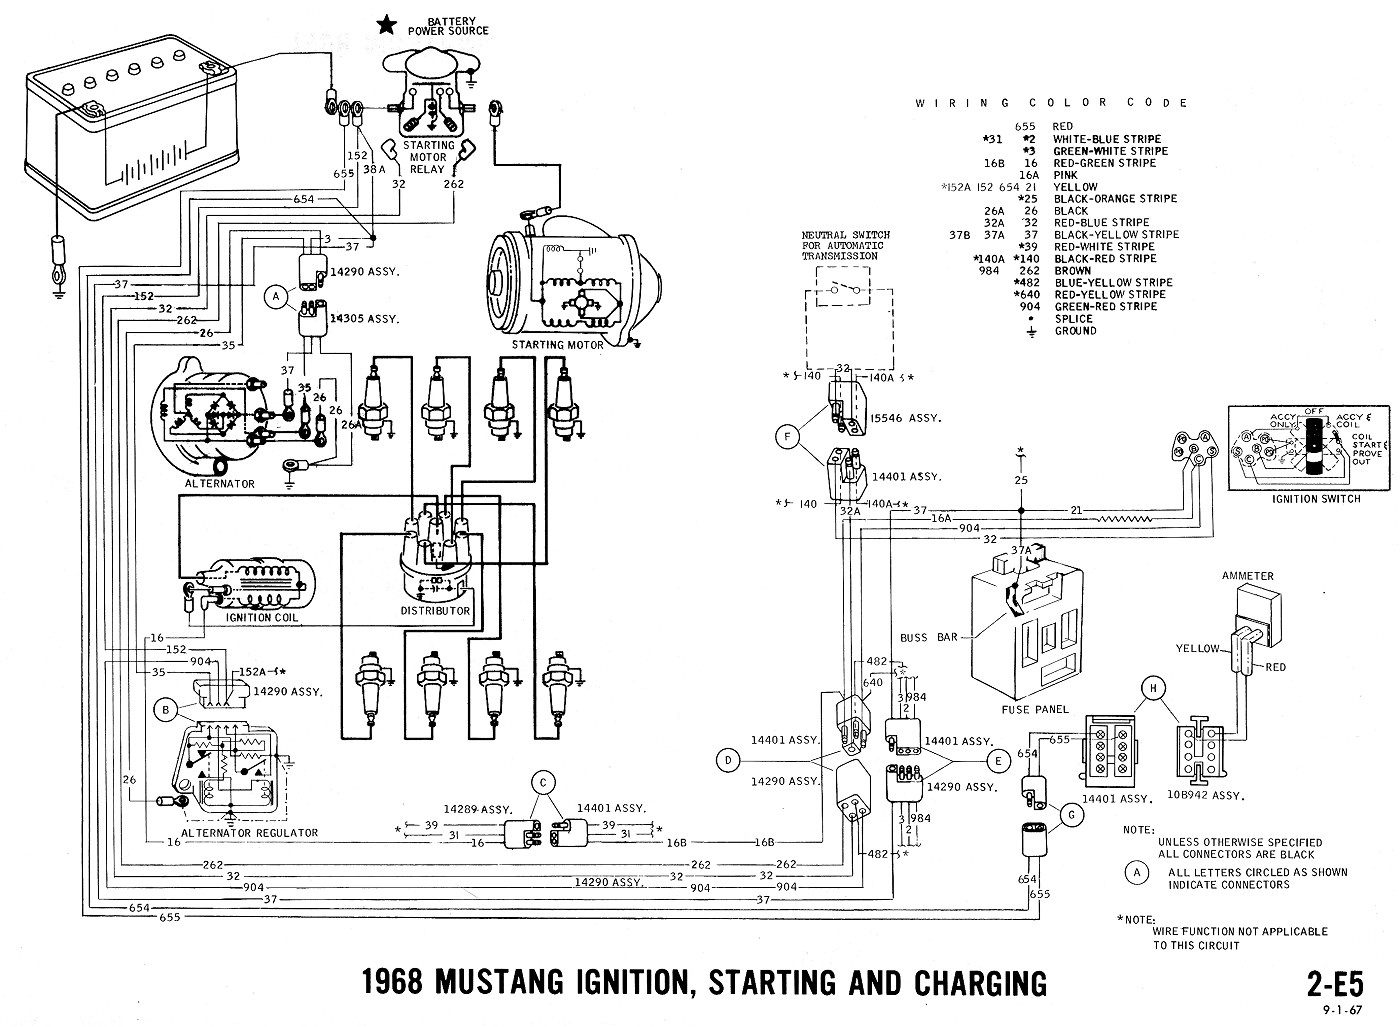 E5 1951 cadillac wiring diagram wiring diagram all data